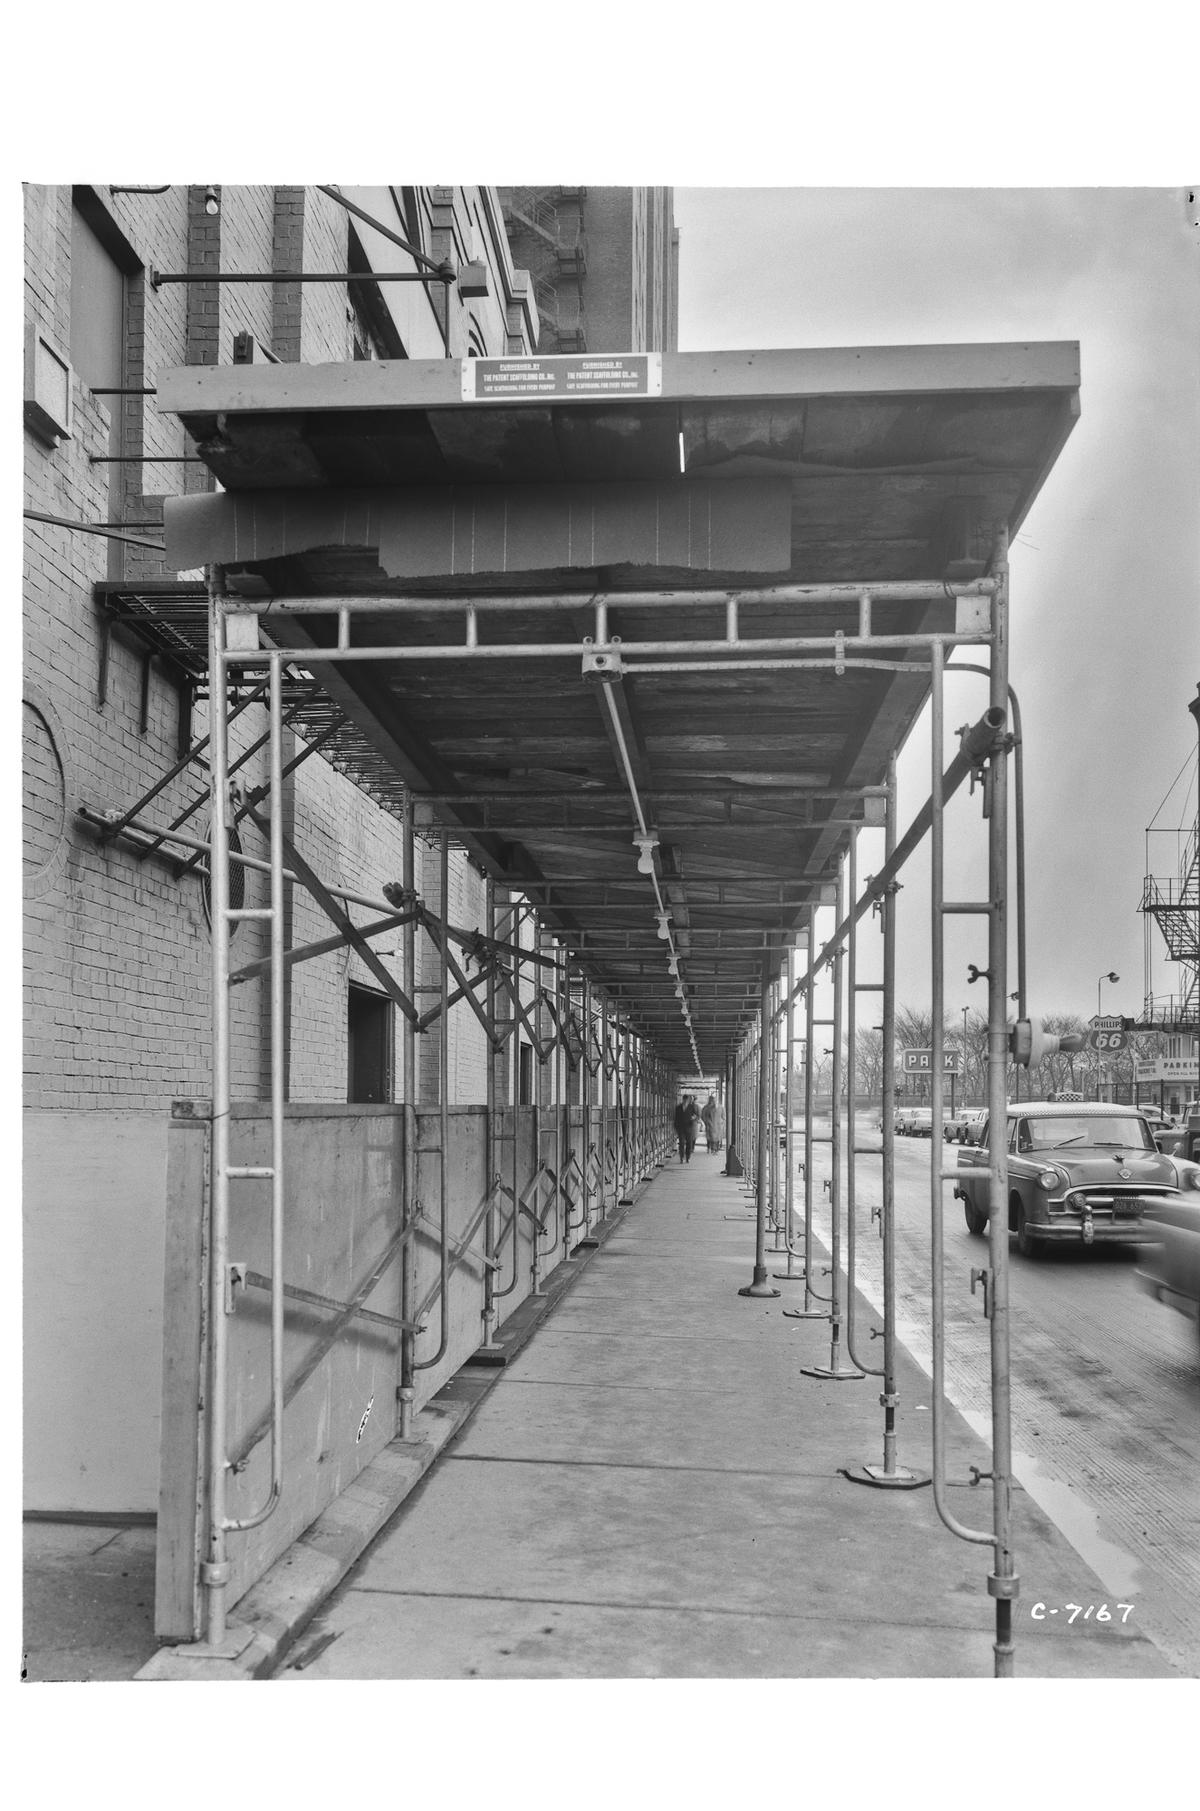 8th Street and South Michigan Avenue; exterior with scaffolding